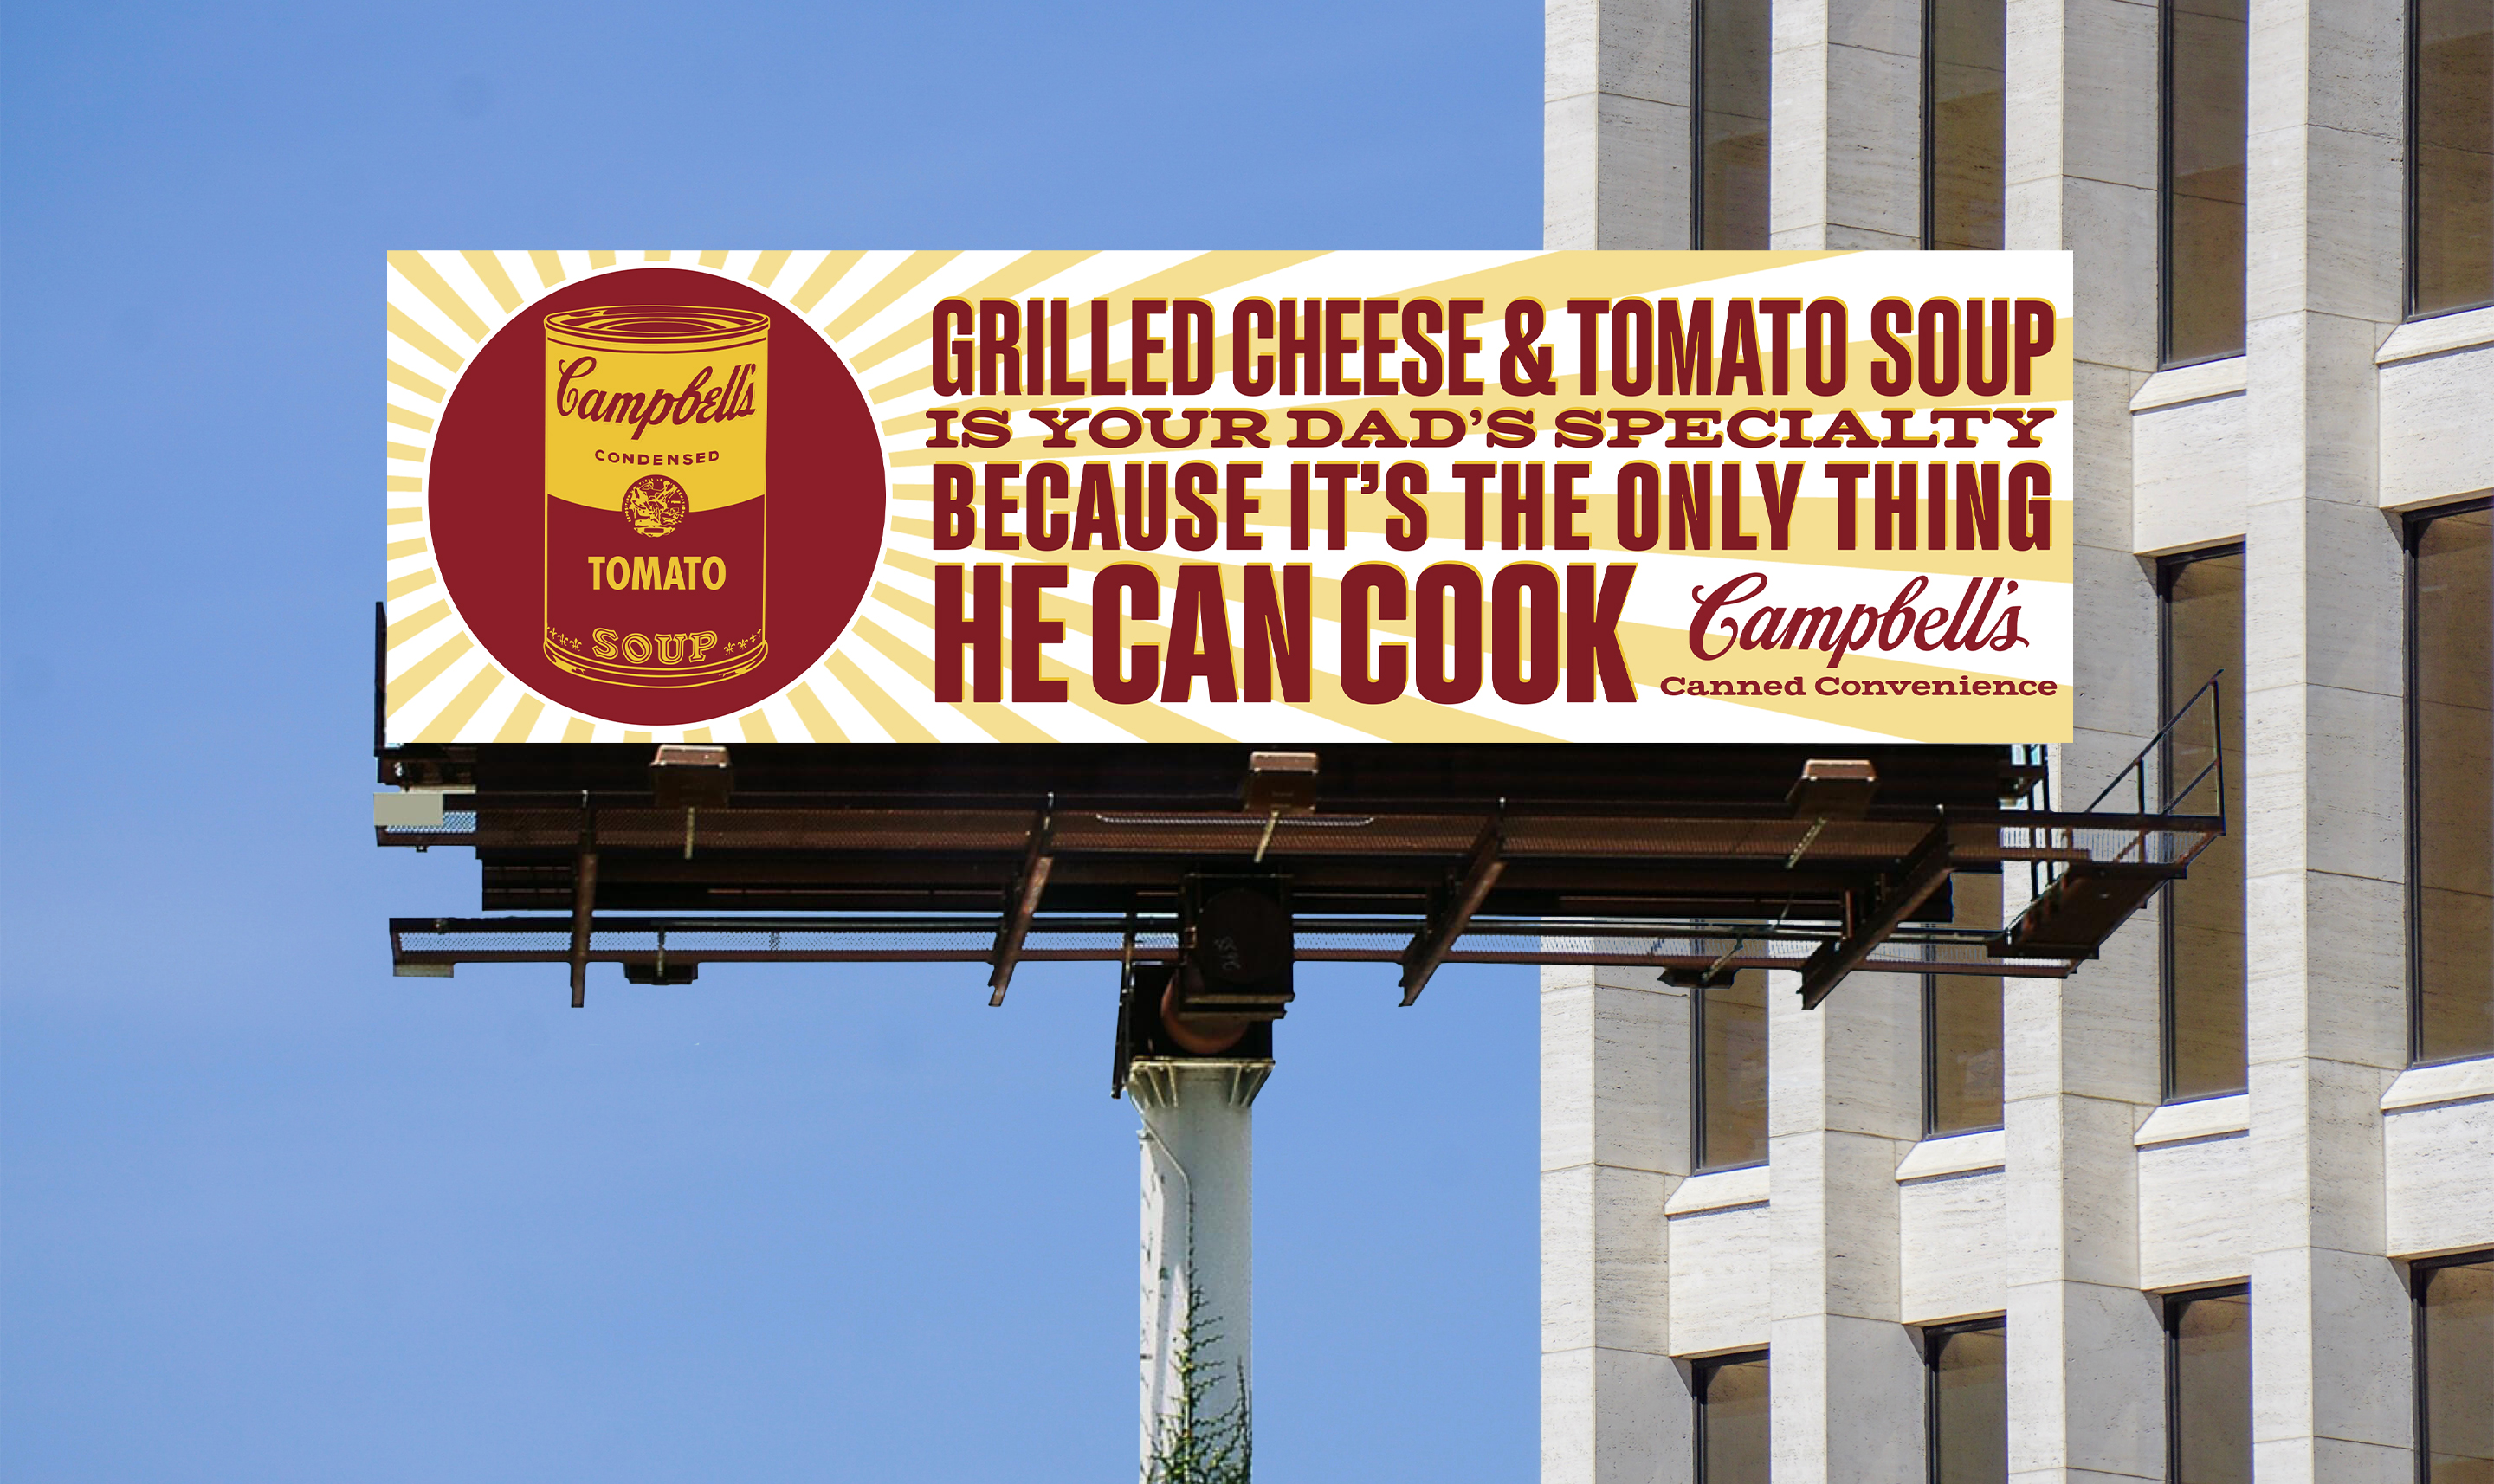 Campbells-Billboard-2